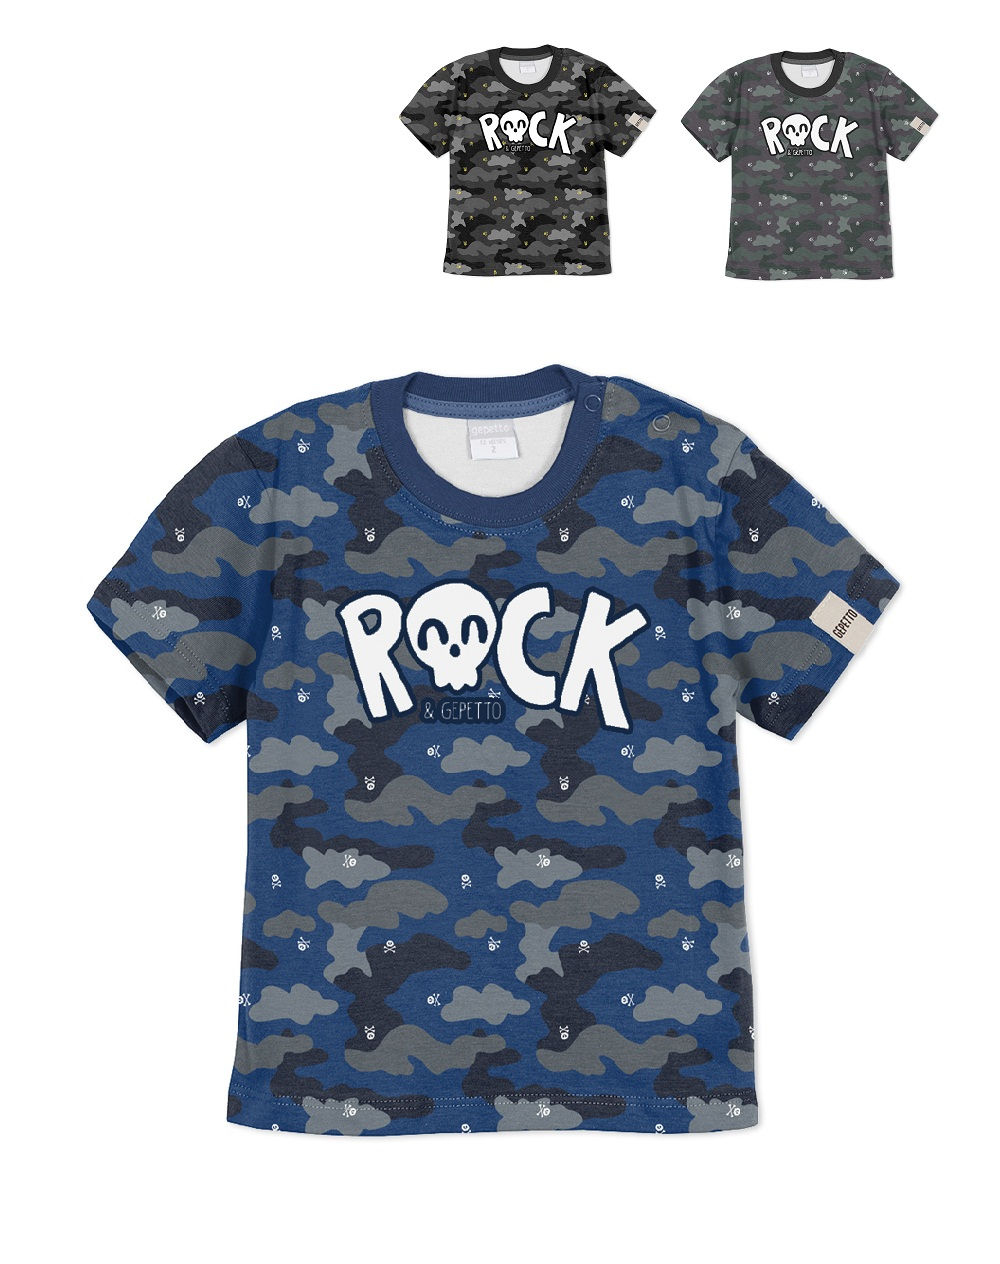 REMERA ART.183311 T.18/24/48M BEBE ESTAMPA, ROCK Talles: 18M A 48